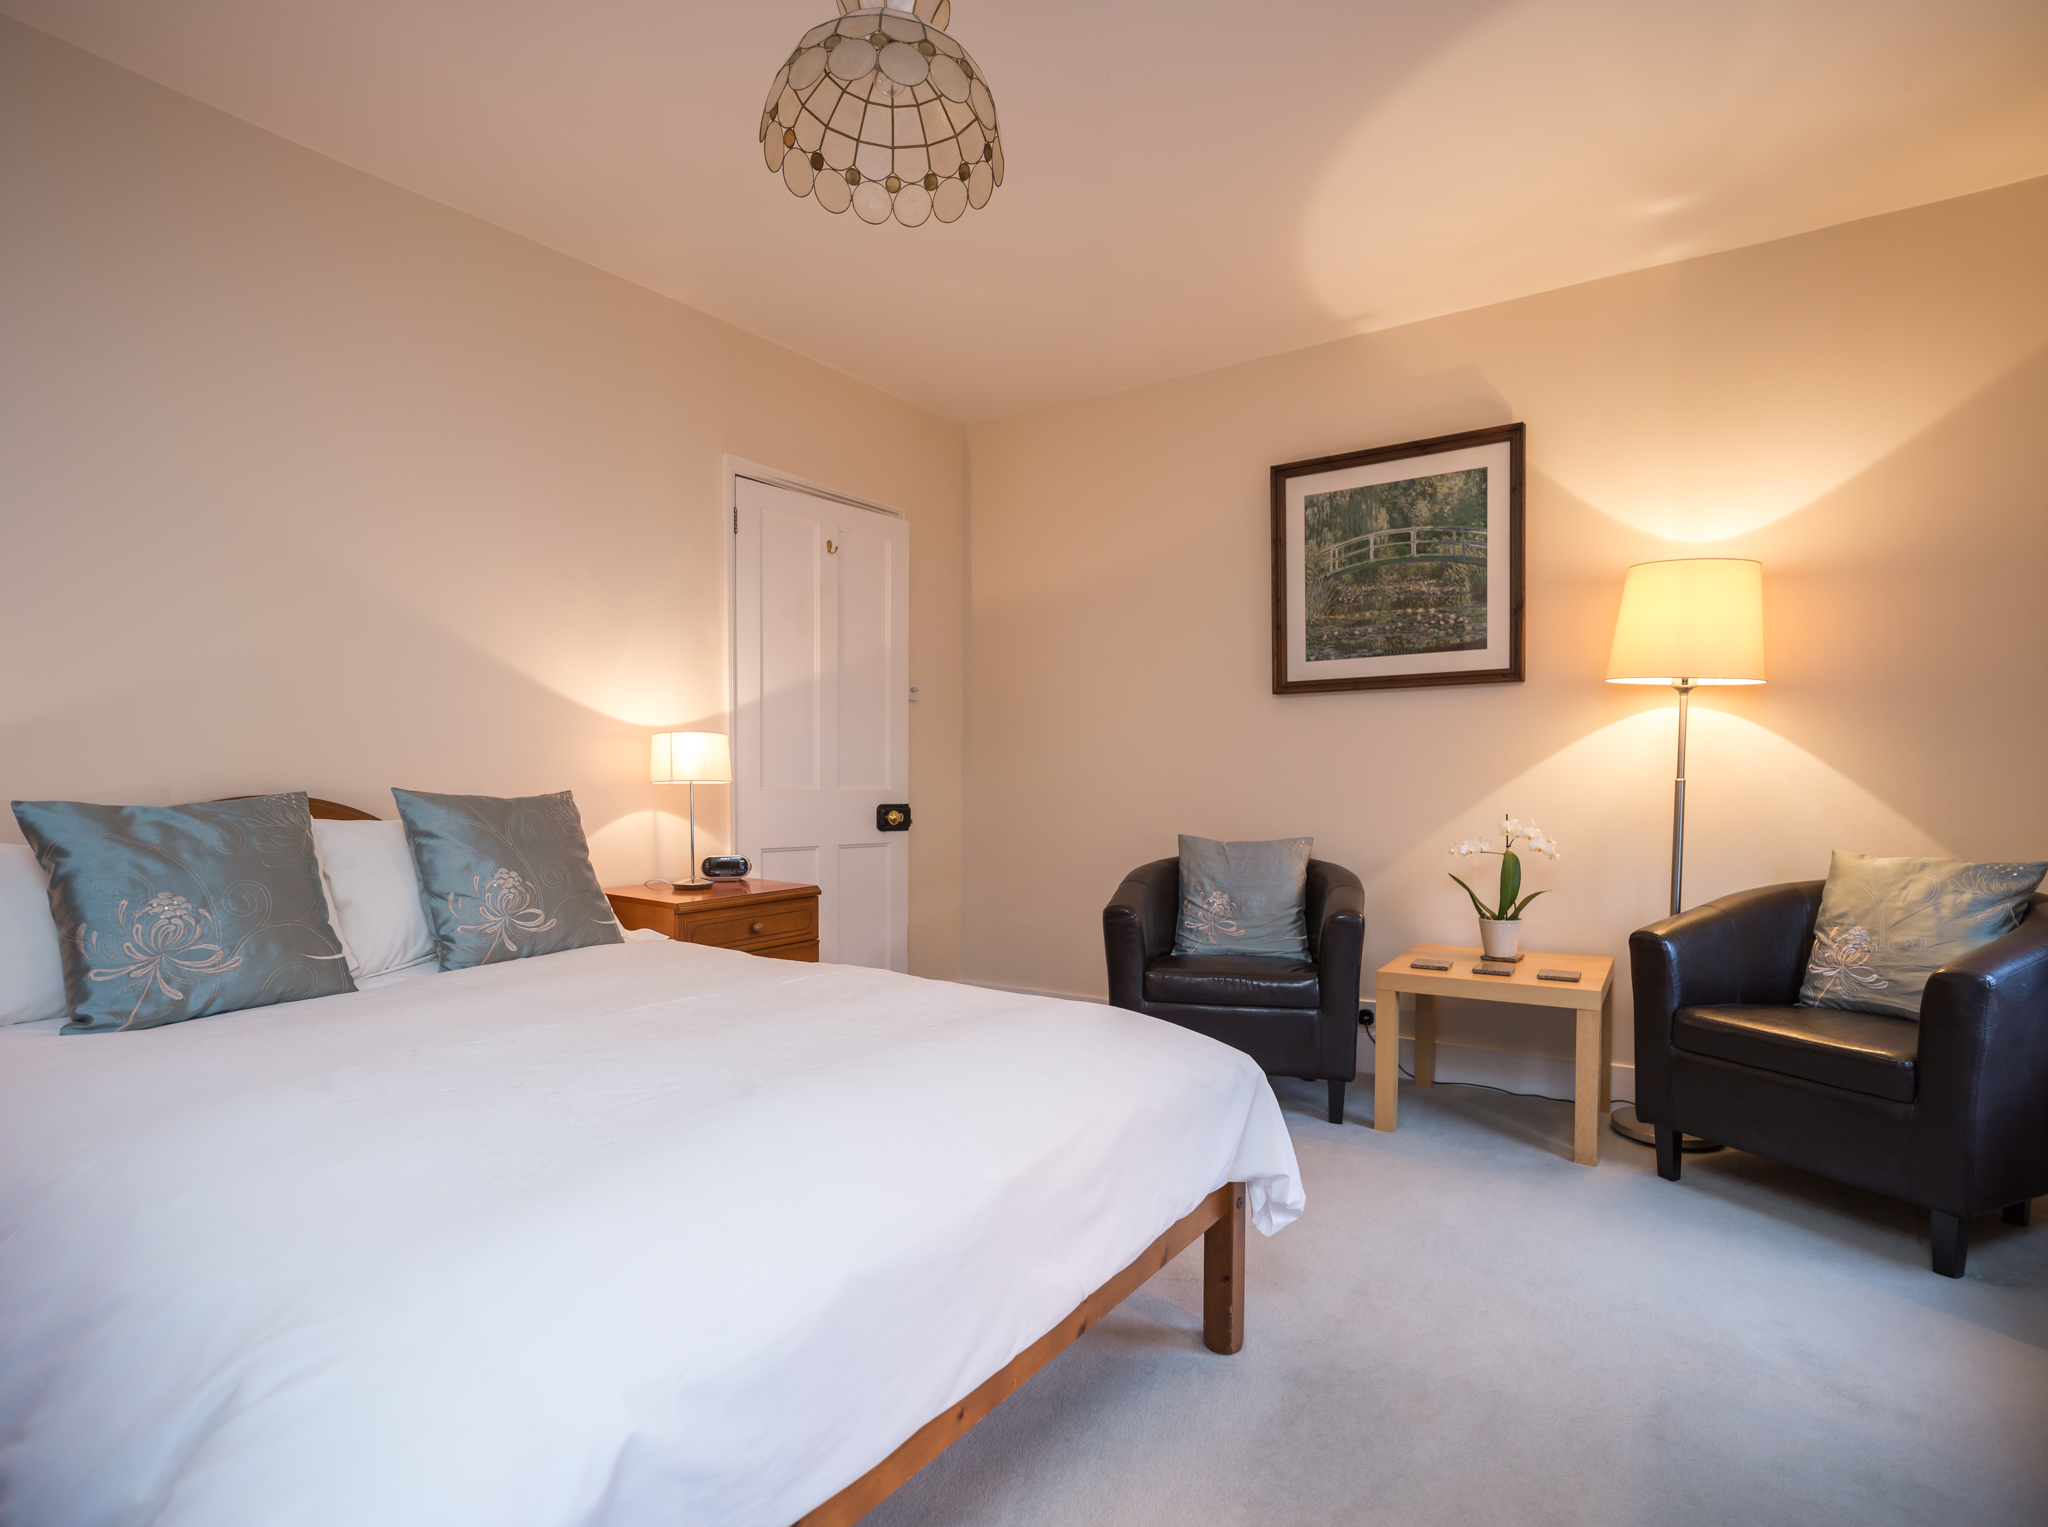 Main Bedroom - The spacious main bedroom has one double bed and a seating area with leather armchairs. The separate private bathroom is yours to enjoy exclusively.Double Occupancy£95 - £100 /nightSingle Occupancy£90 - £95 /night